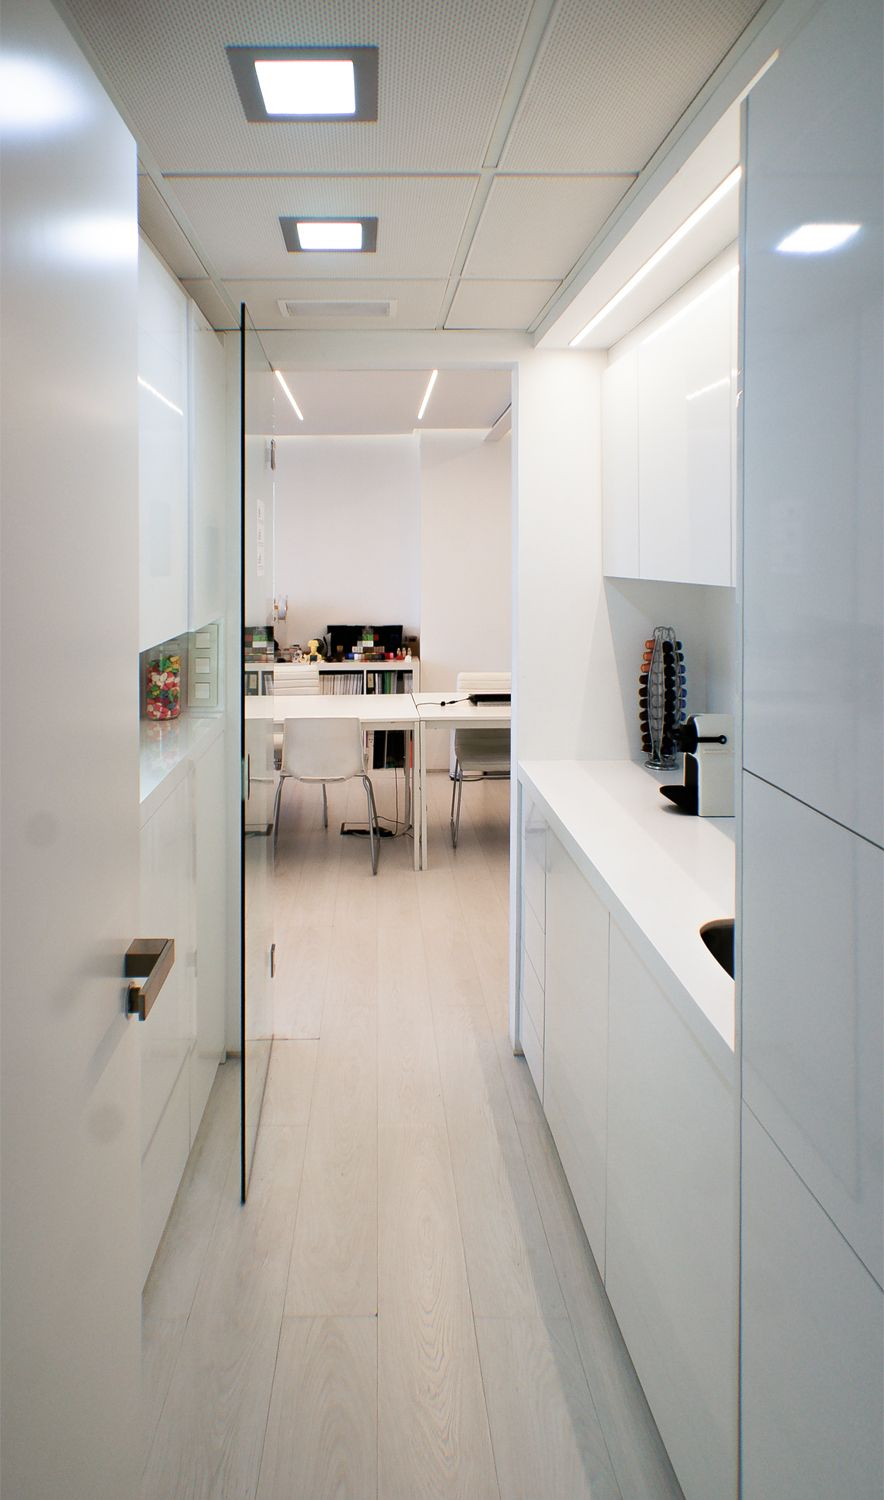 auditus/lem3a office: Kitchen